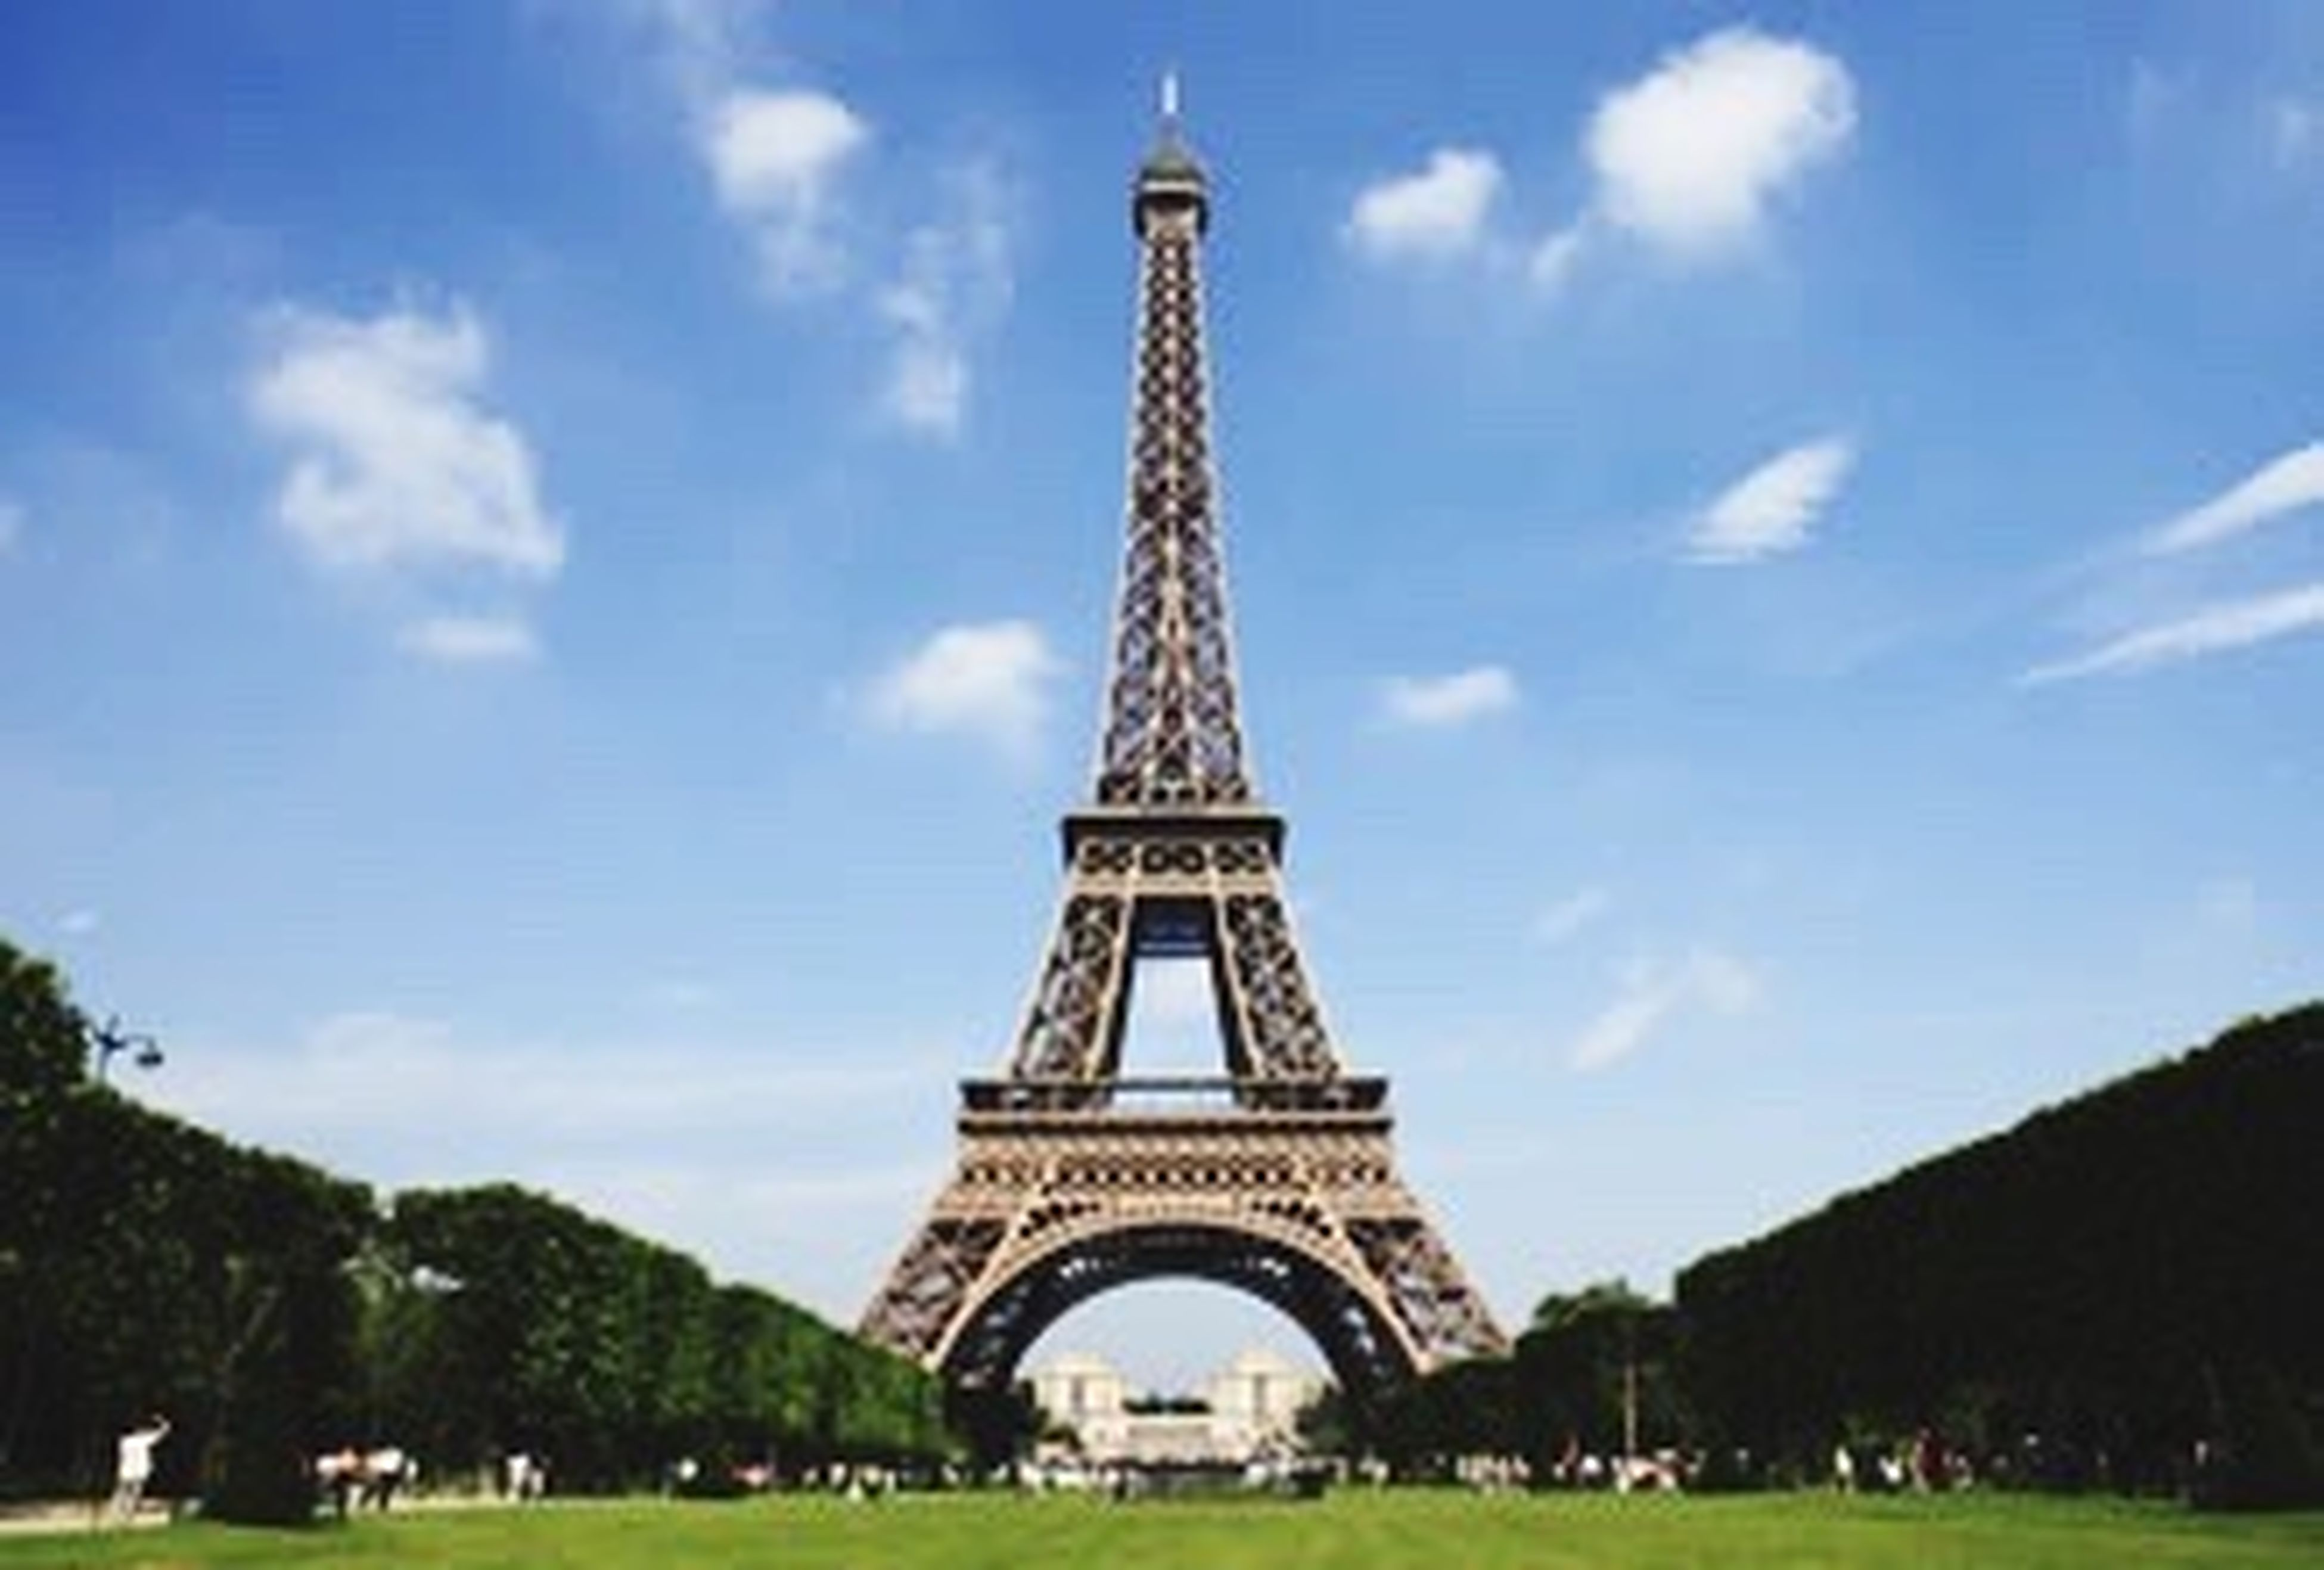 international landmark, travel destinations, tower, tourism, famous place, eiffel tower, travel, culture, capital cities, architecture, built structure, tall - high, history, sky, metal, tourist, arch, city, incidental people, vacations, iron - metal, lawn, architectural feature, monument, engineering, building exterior, tall, cloud, day, city life, outdoors, spire, 19th century style, cloud - sky